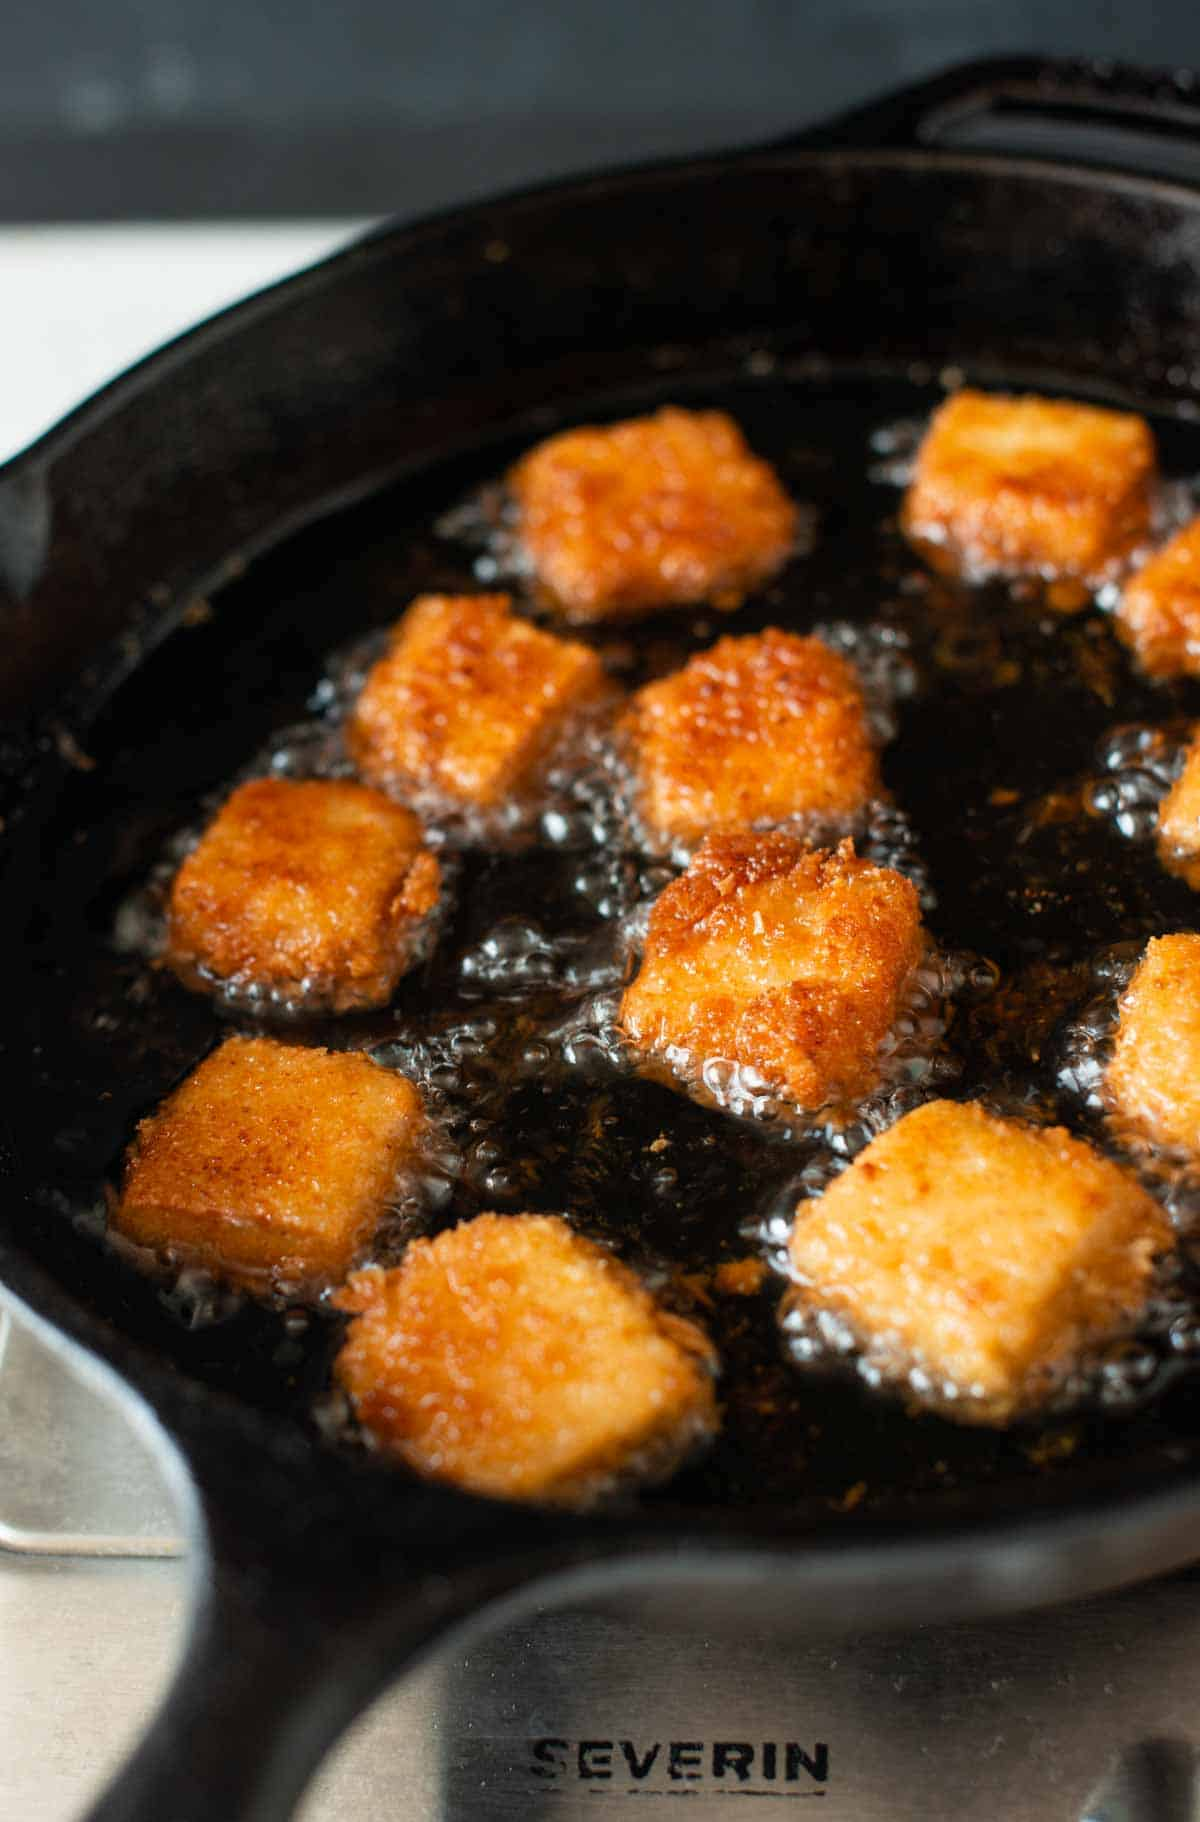 nuggets while frying